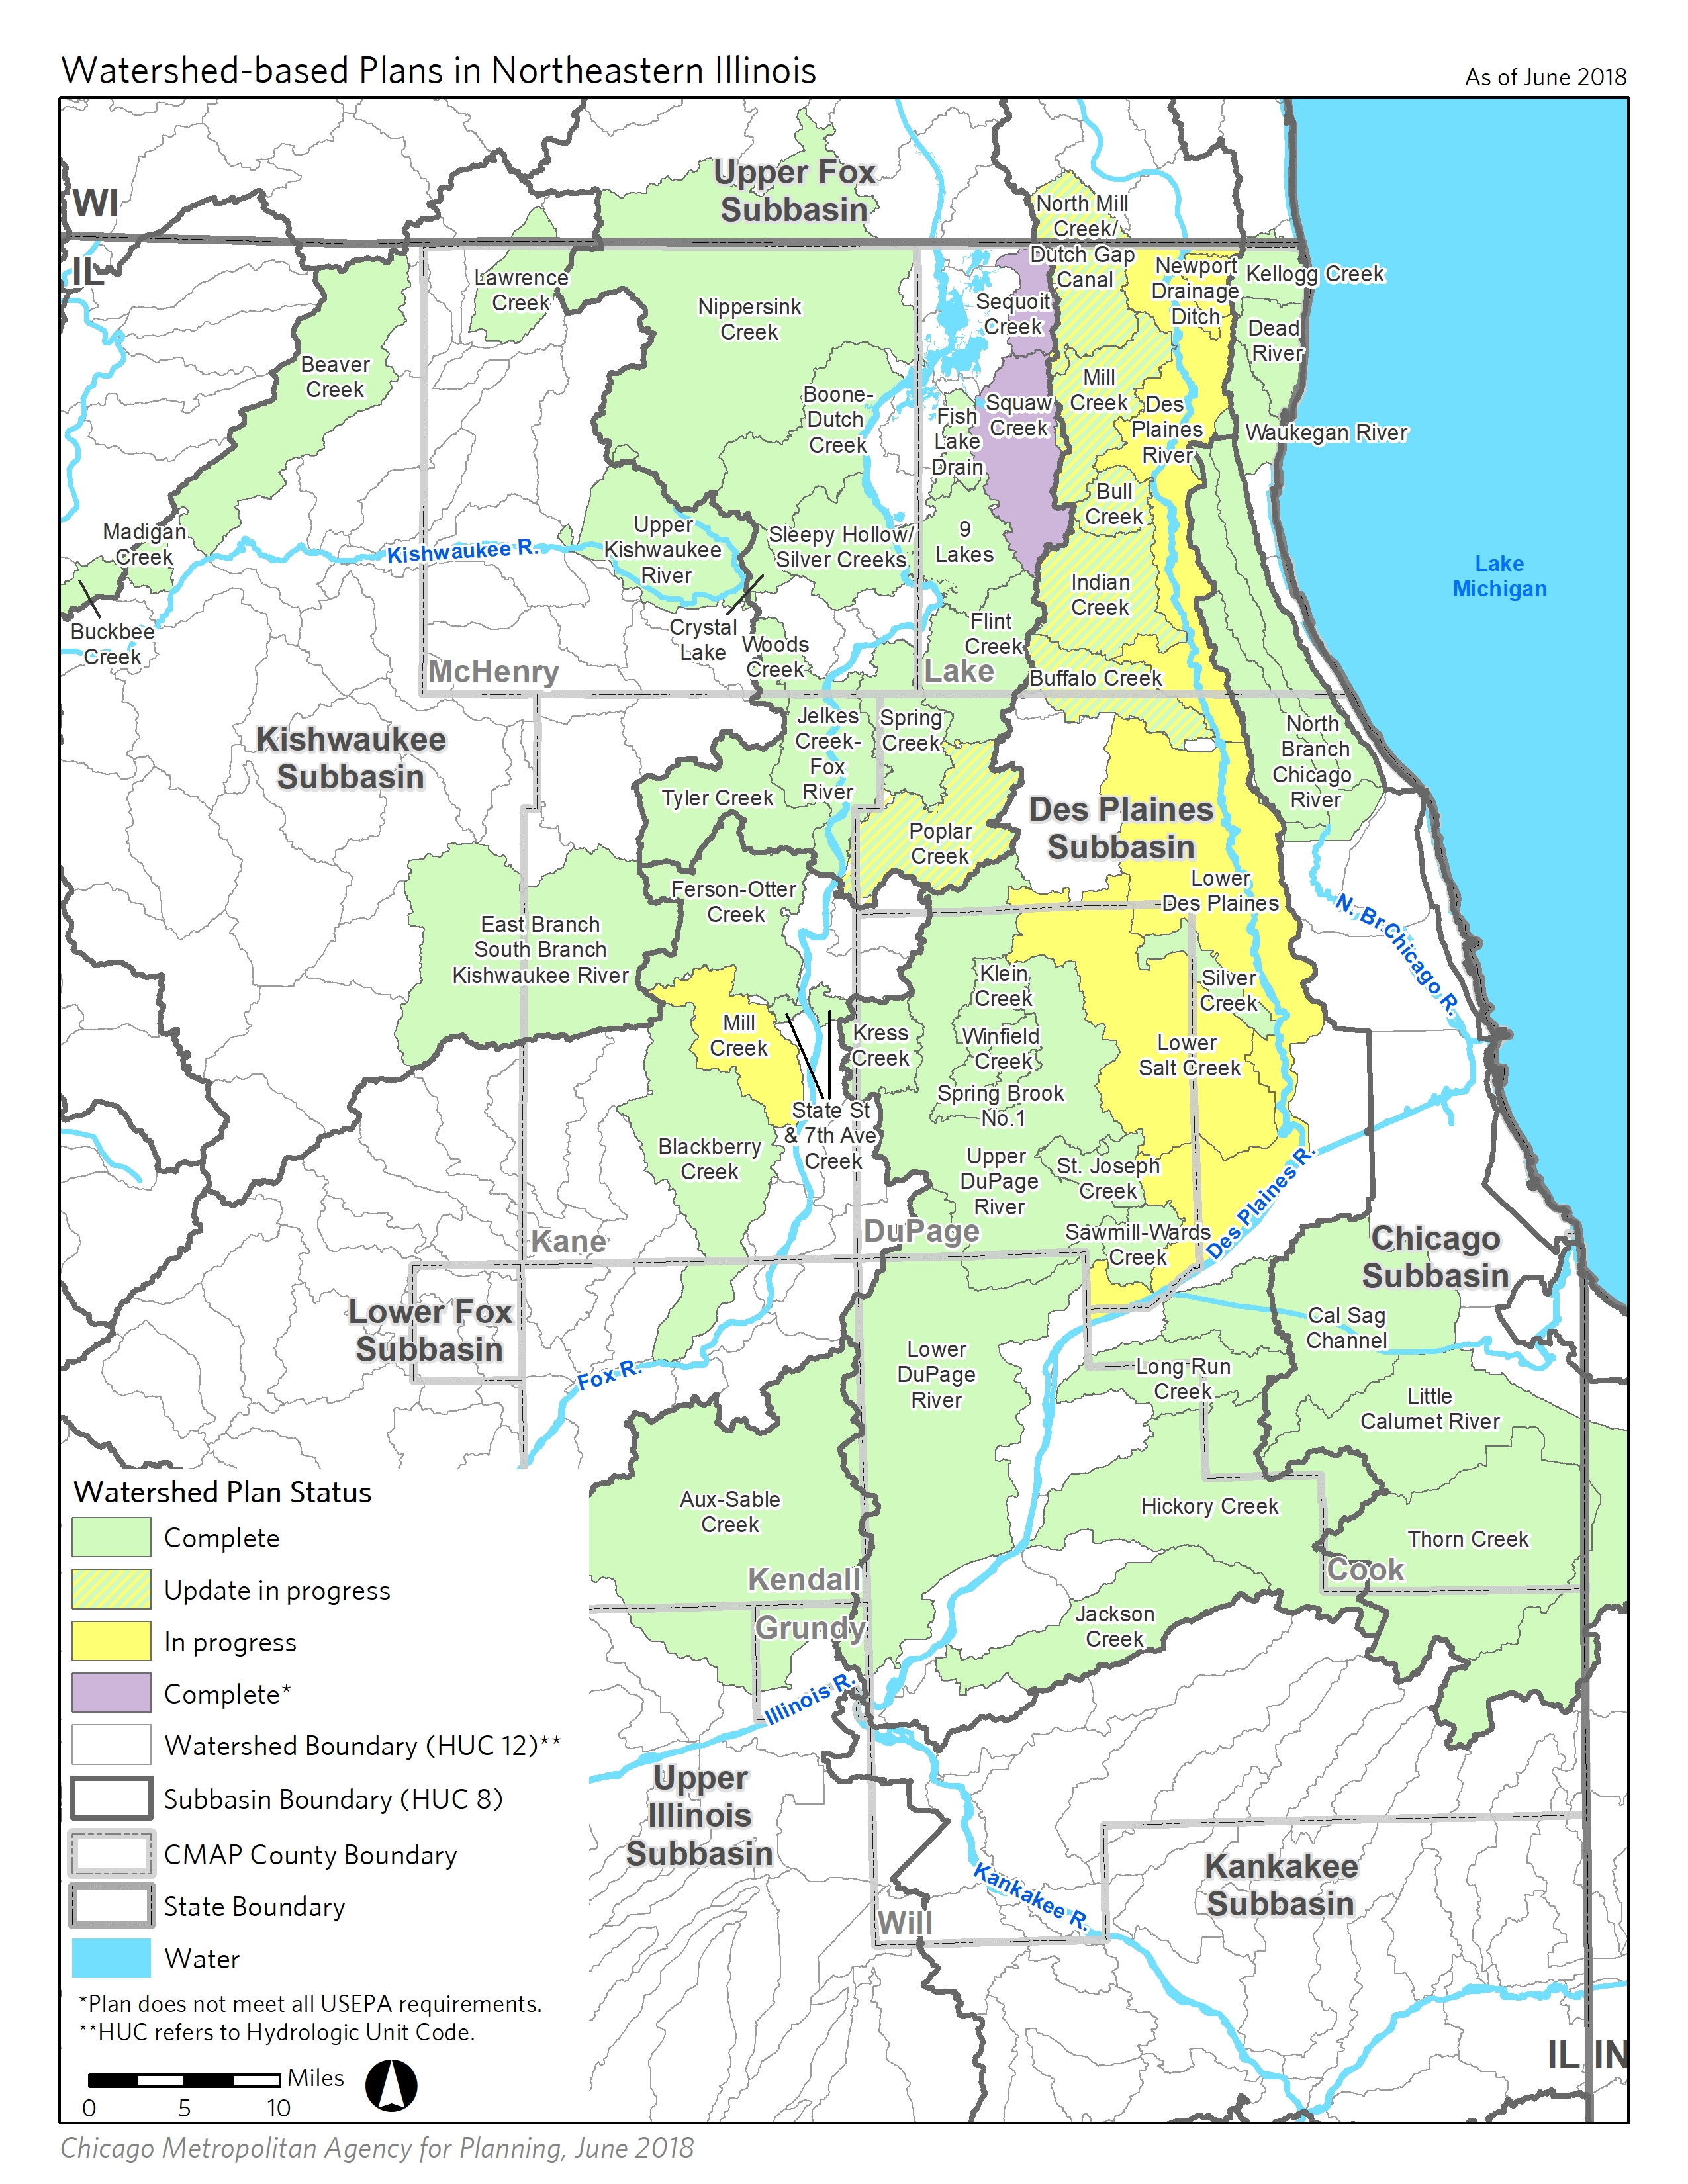 Watershed-based Plans in Northeastern Illinois